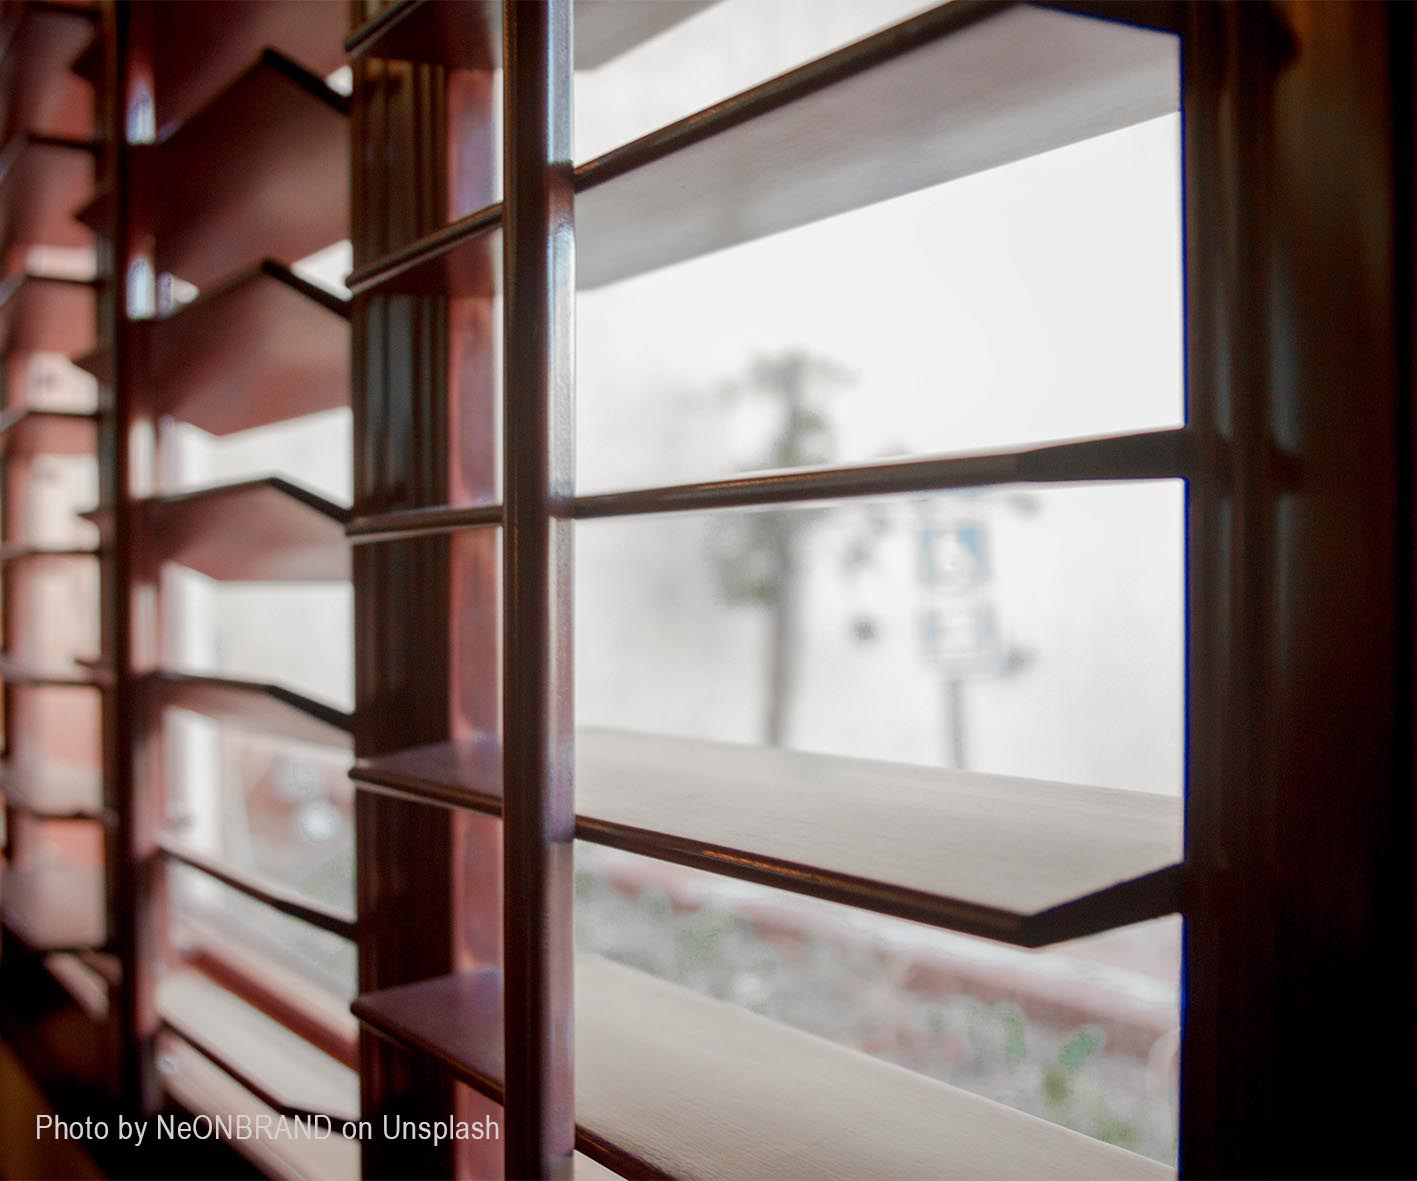 2-Easy-Steps-To-Care-For-Your-Timber-Blinds - 2-Easy-Steps-To-Care-For-Your-Timber-Blinds